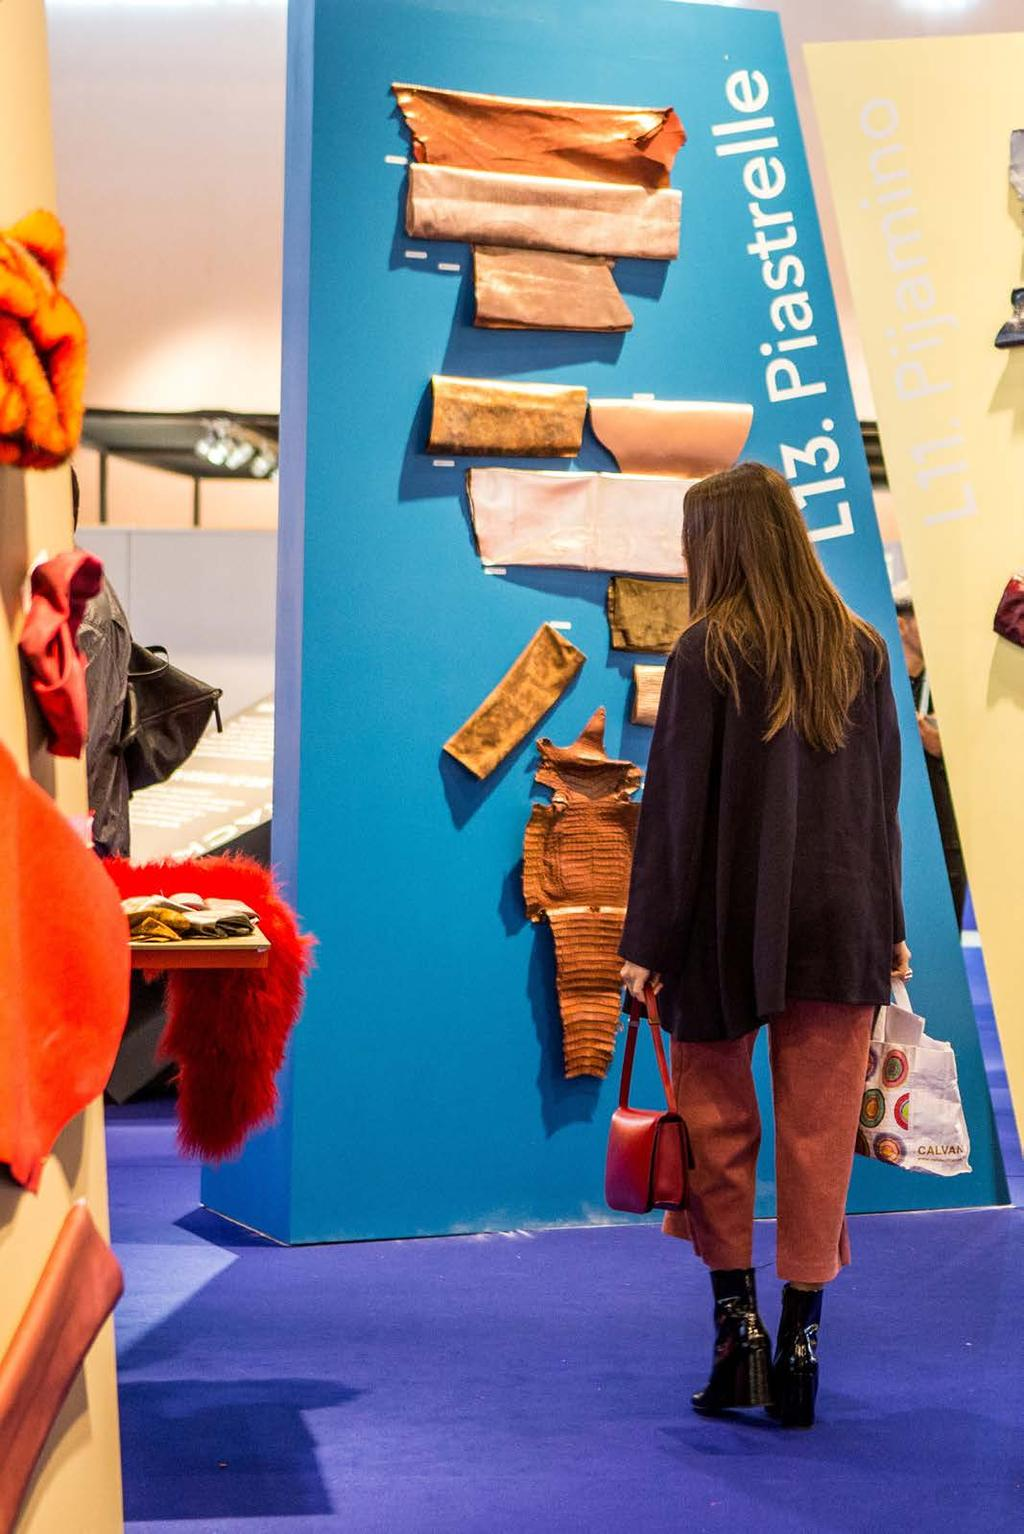 PREMIÈRE VISION LEATHER FASHION INFORMATION FASHION PRESENTATION, tools and forums TO INSPIRE YOU AND TO SHOWCASE YOUR PRODUCTS AT THE SHOW, WE OFFER POWERFUL TOOLS AVAILABLE EXCLUSIVELY TO